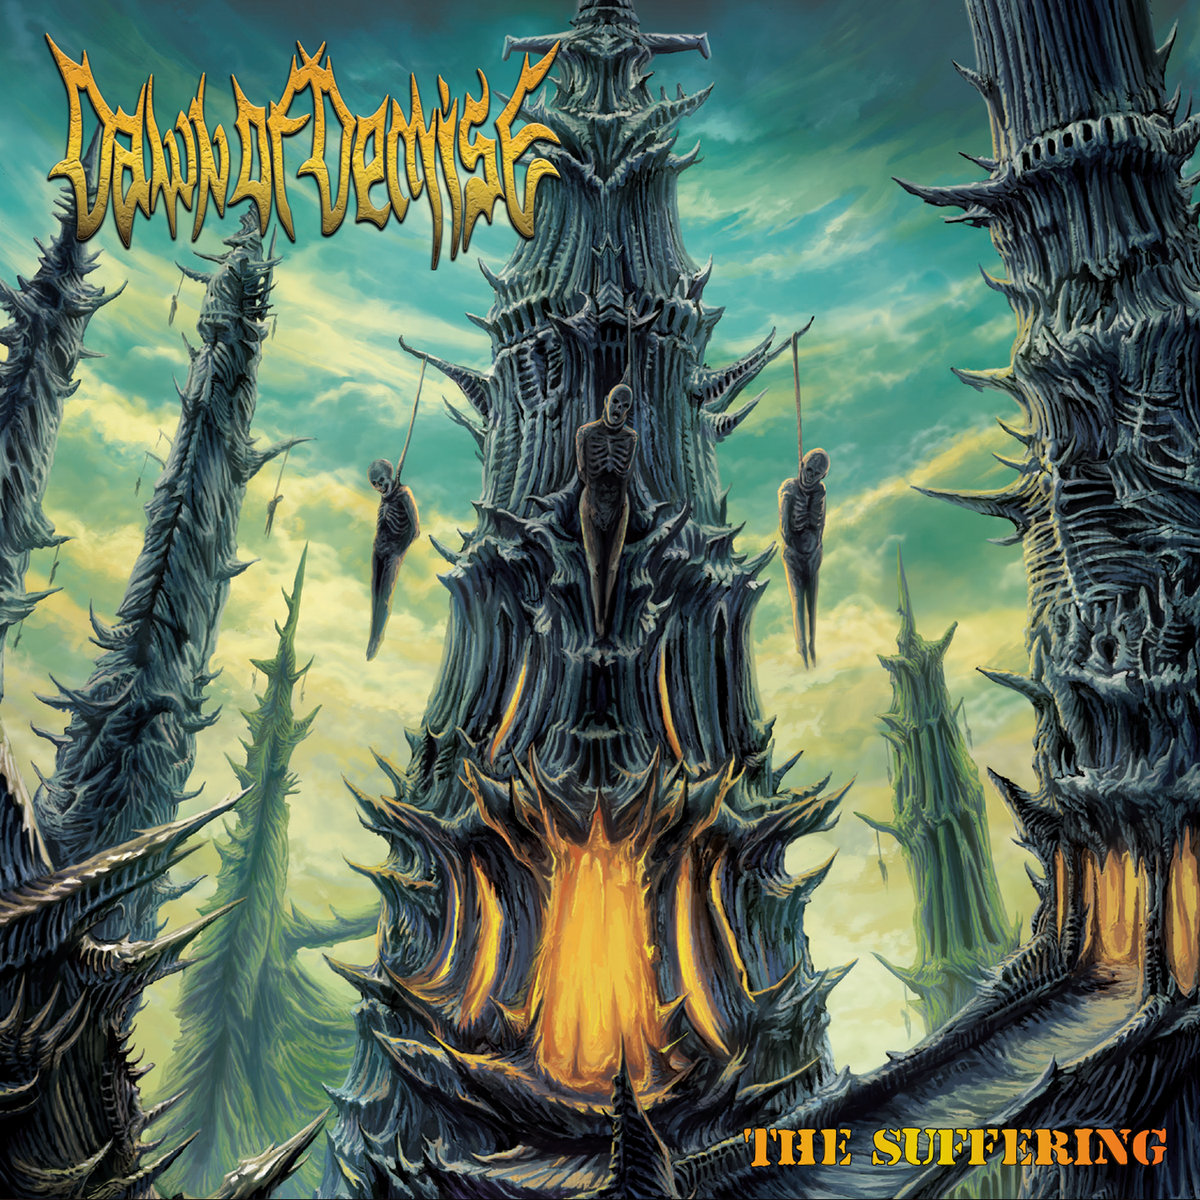 Dawn of Demise – The Suffering CD Review